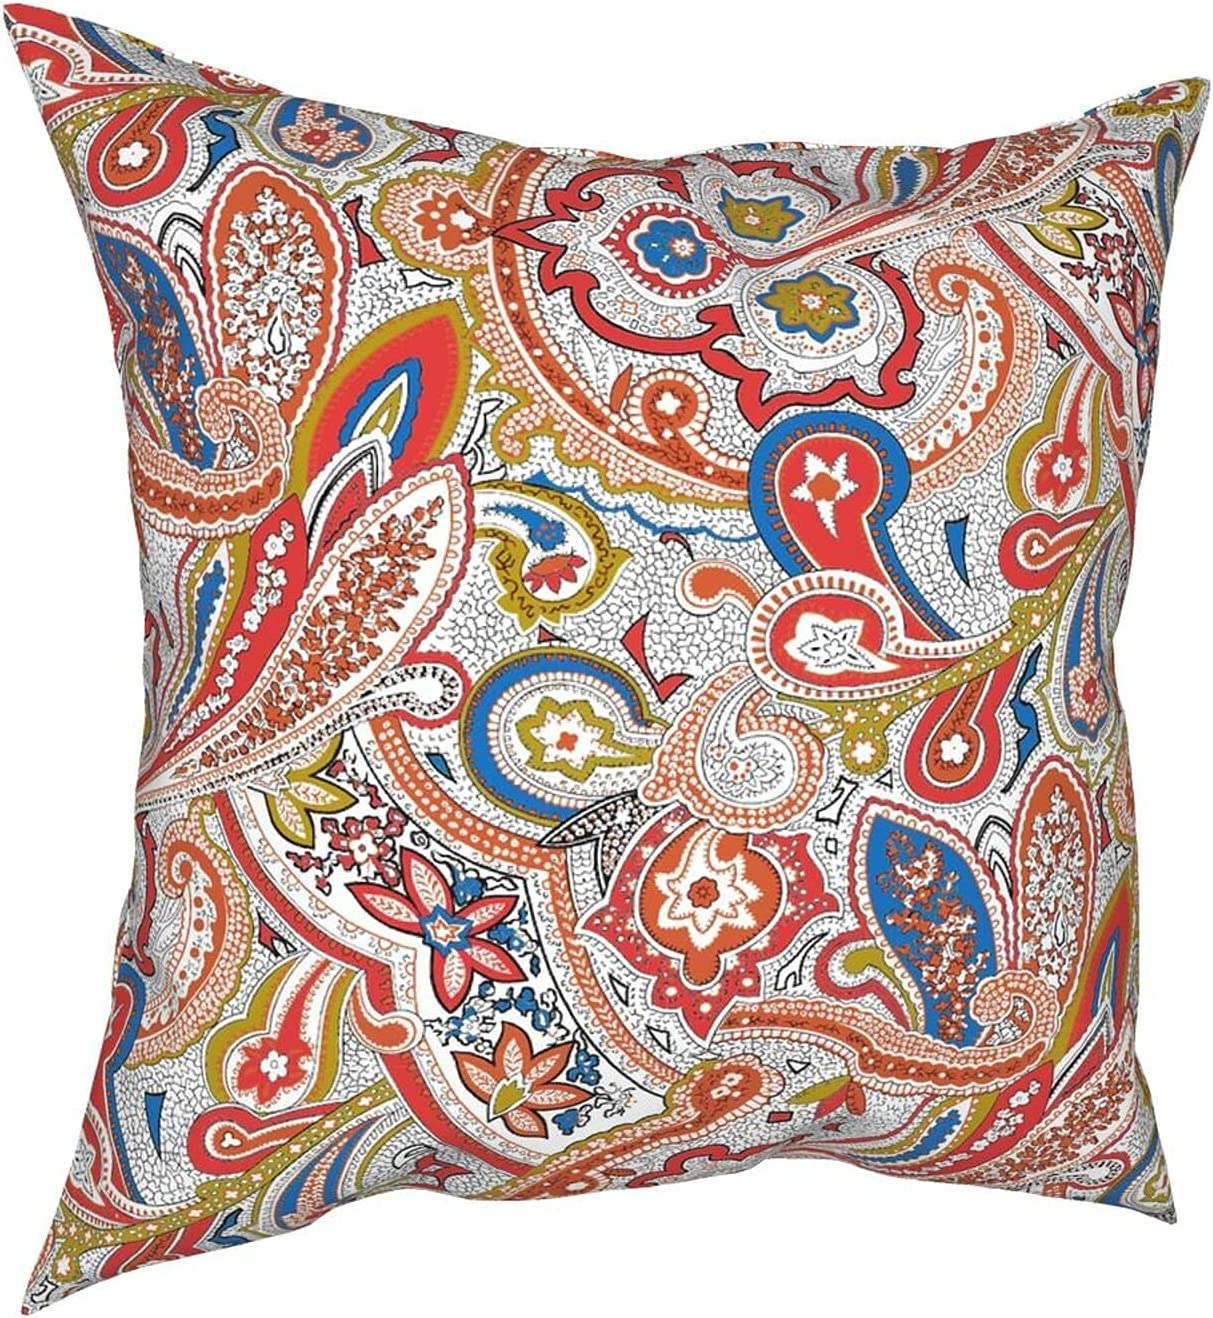 Superior PMHGJDSVFSD Boho Floral Decorative Pillow Covers Euro M Colorful Excellence